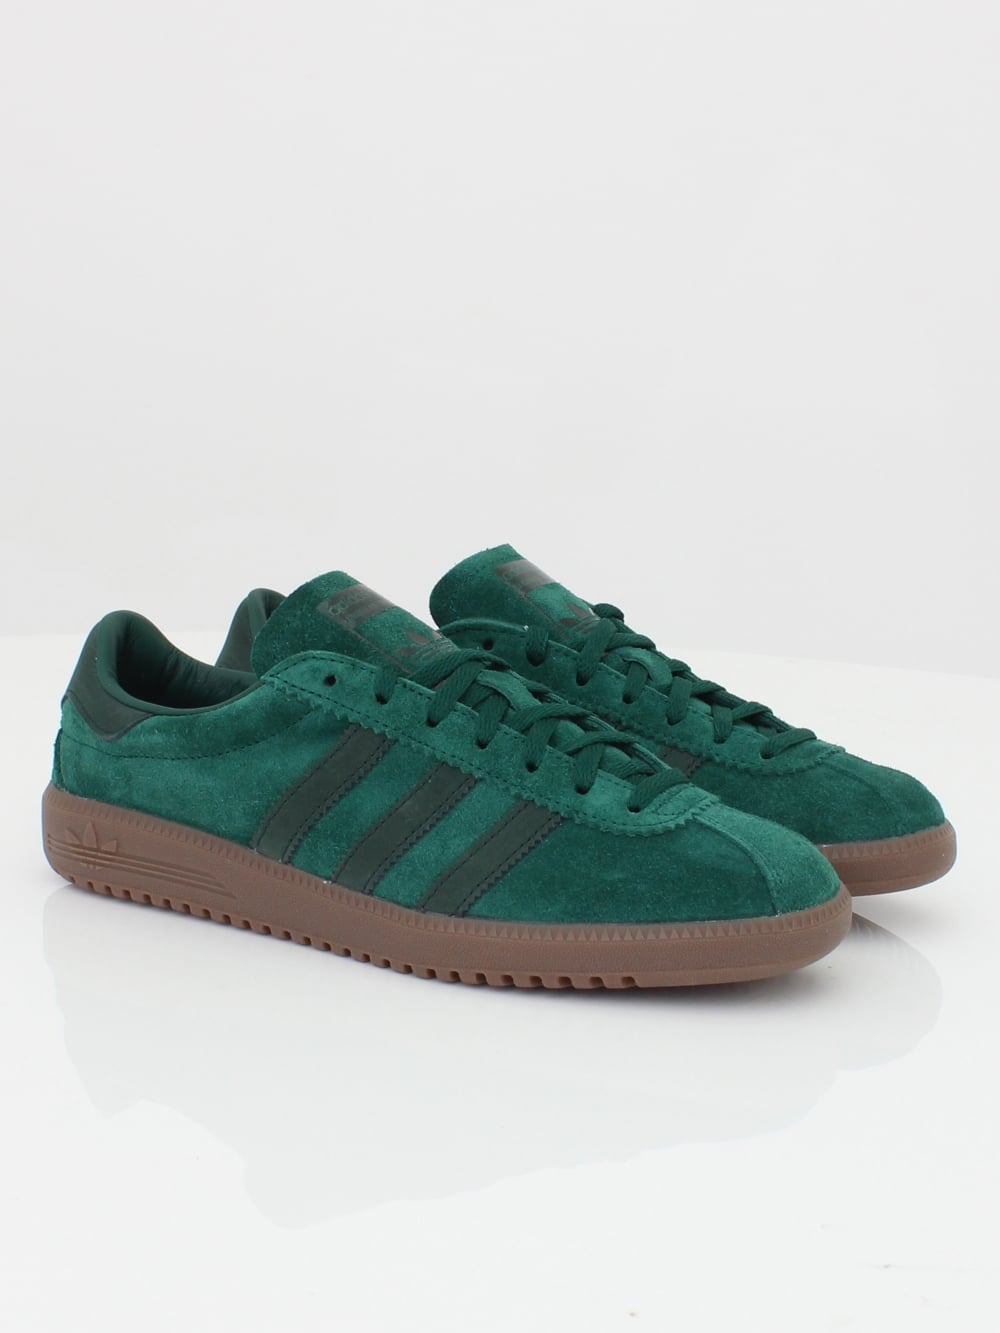 Northern Threads In Green Bermuda Adidas qgtwnFvxw